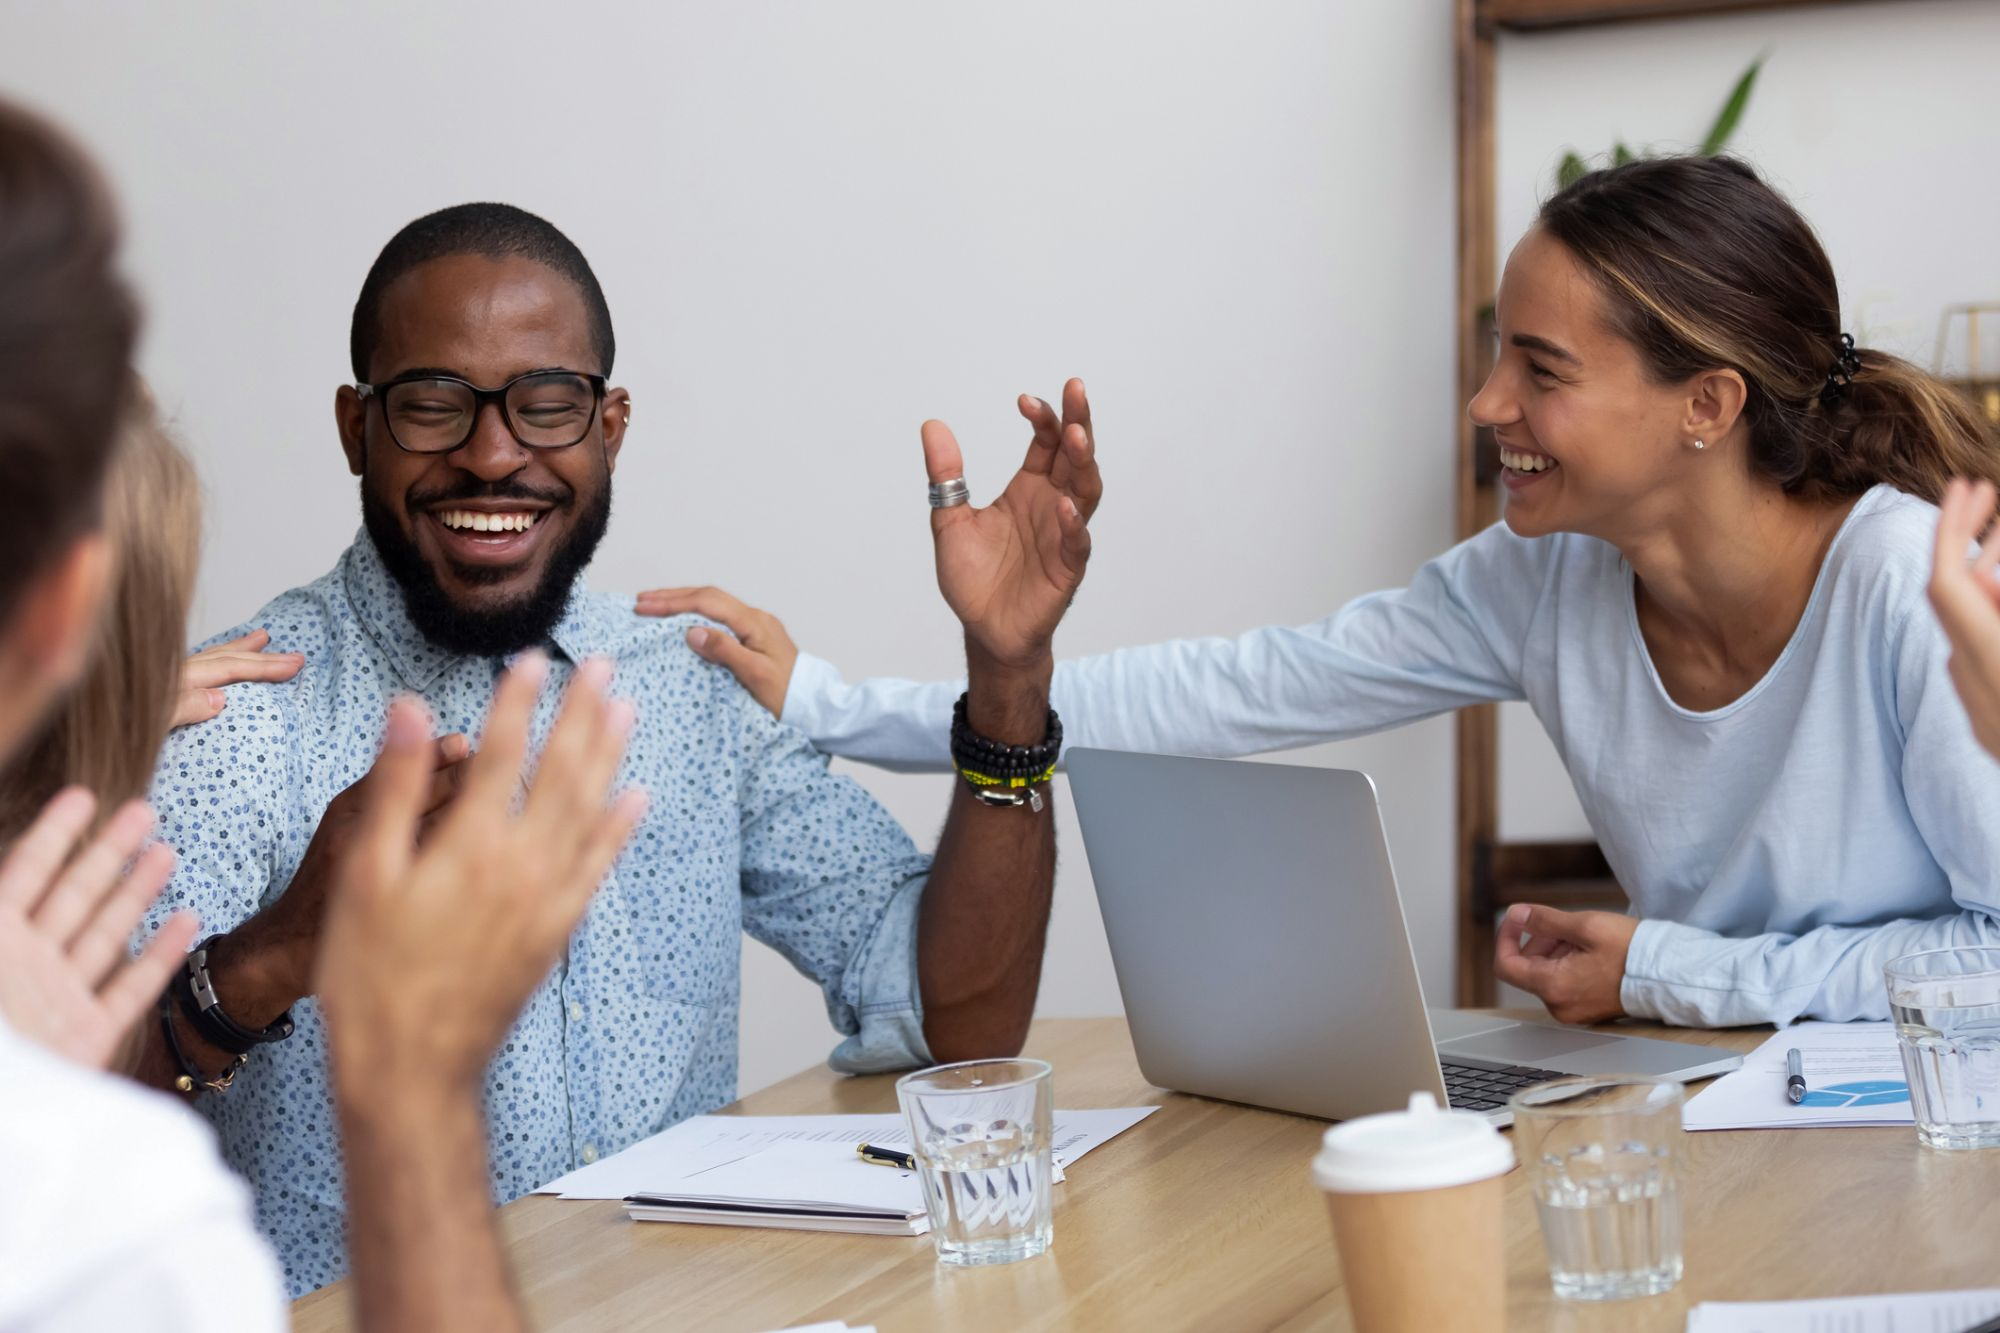 3 Ways to Help Introverts Shine in an Extrovert-Leaning Workplace